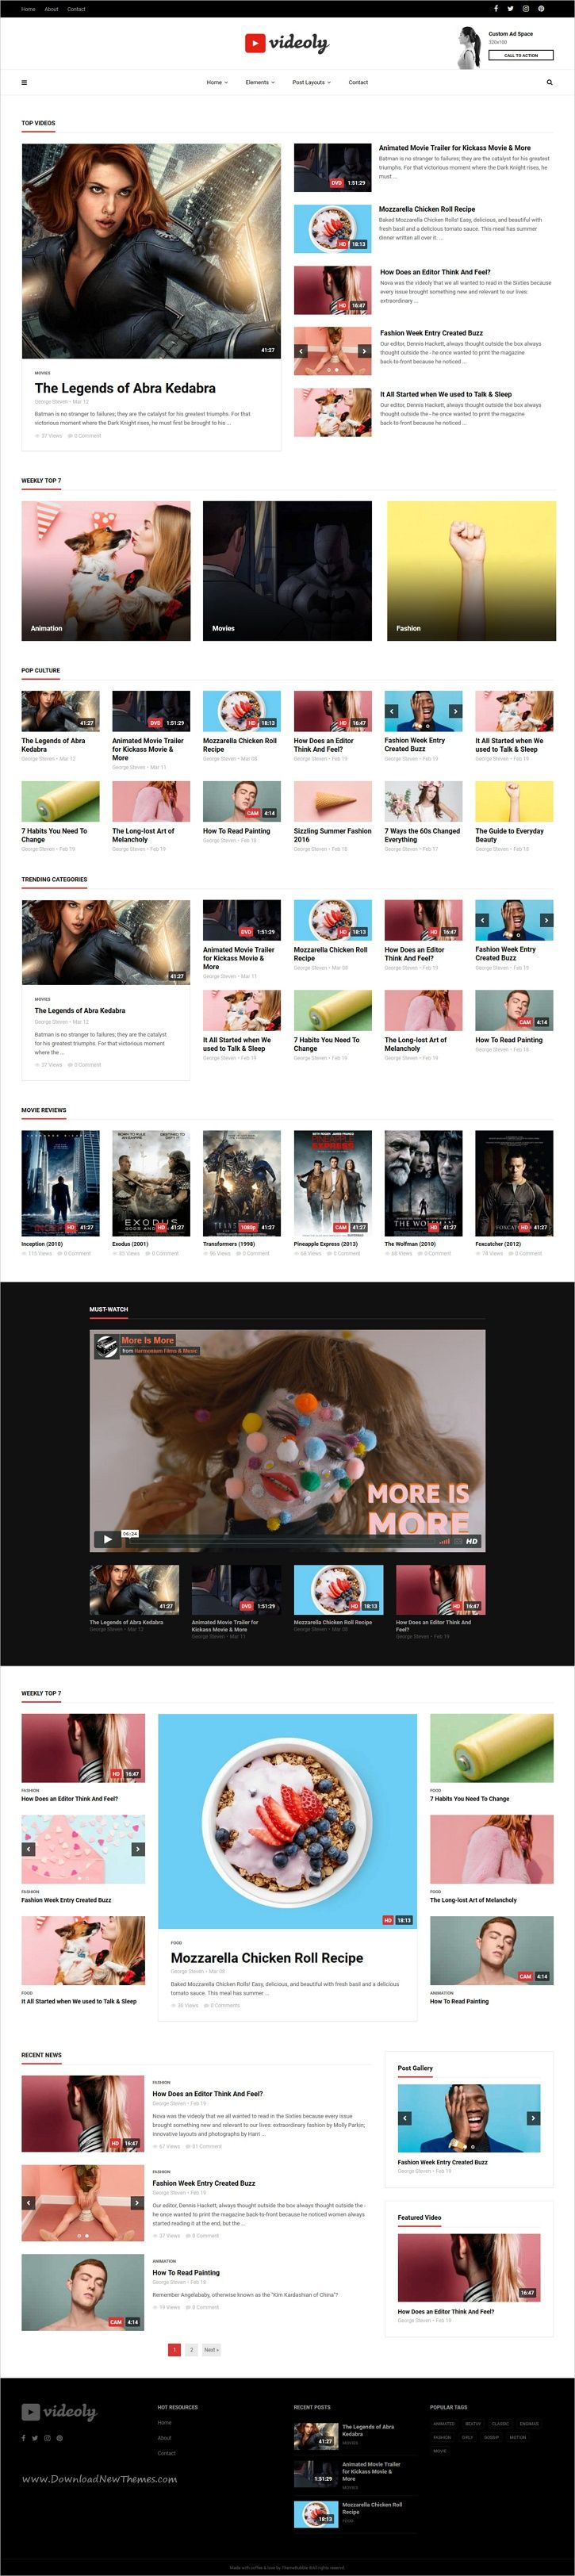 Videoly is clean and modern design responsive #WordPress #video theme suitable for bloggers, #YouTube & #vloggers website with 9+ unique homepage layouts download now➩ https://themeforest.net/item/videoly-video-wordpress-theme/19557971?ref=Datasata